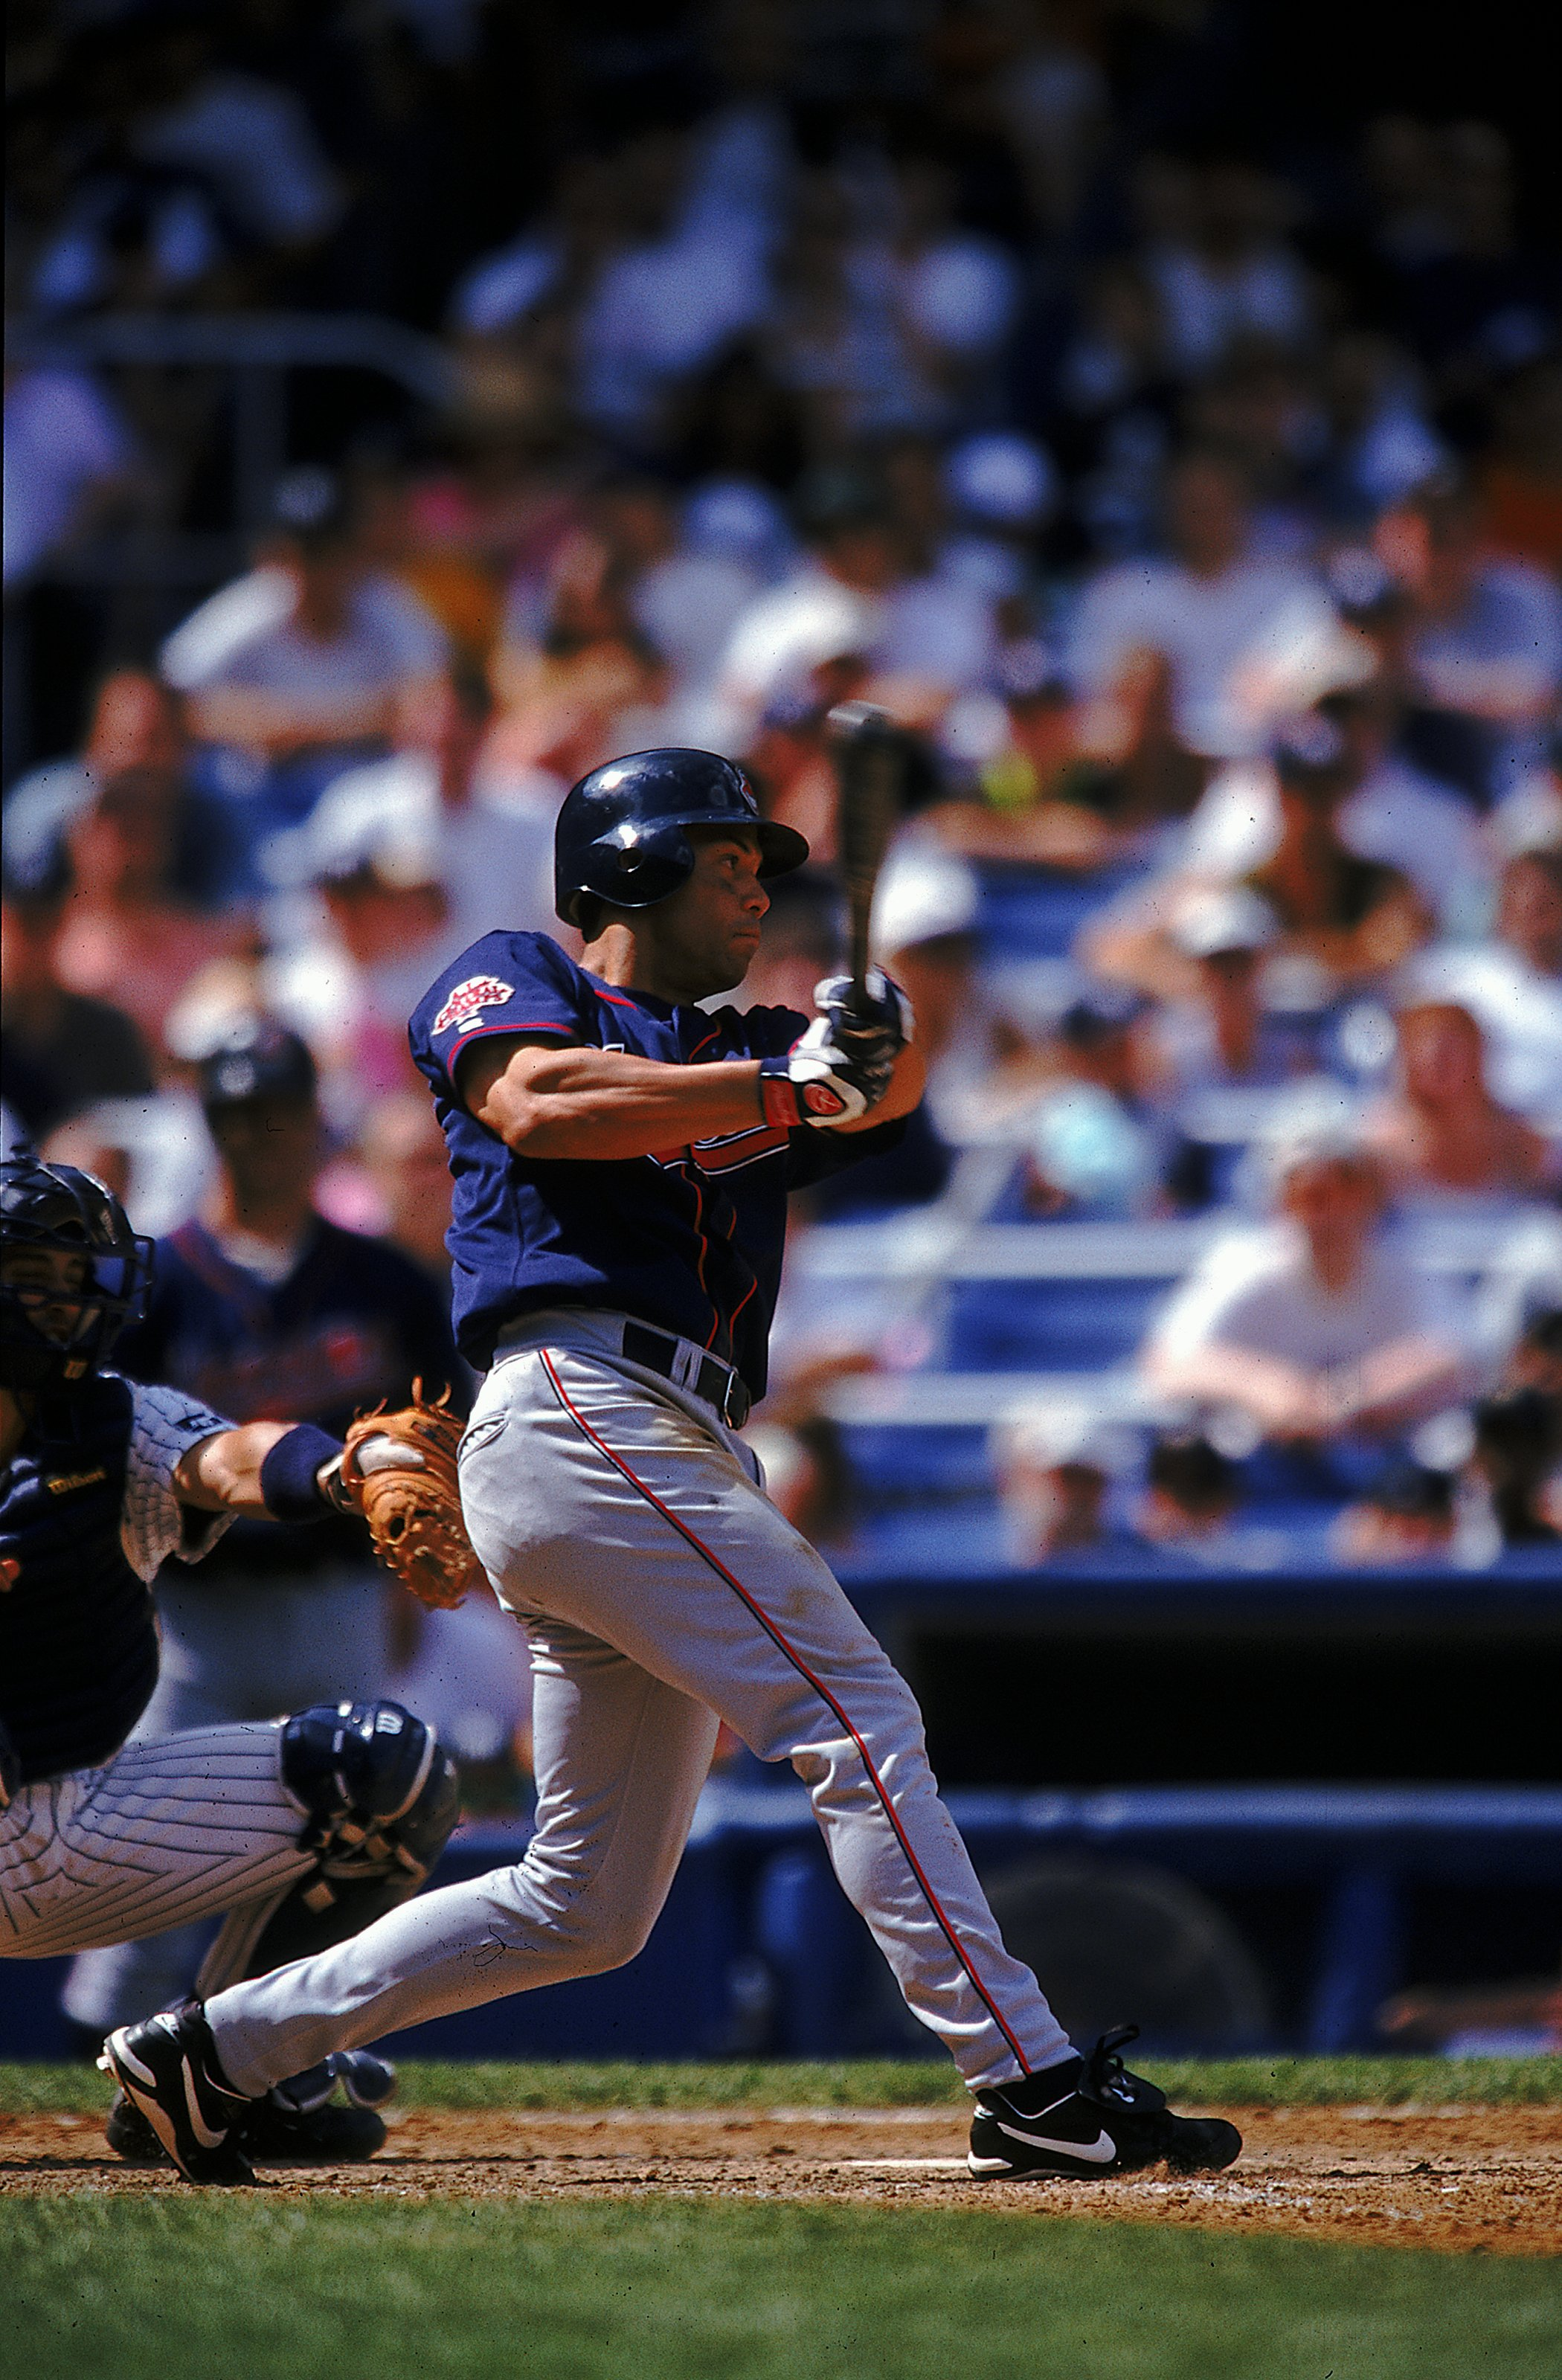 25 Jul 1999: Roberto Alomar #12 of the Cleveland Indians watches the ball after hitting it during the game against the New York Yankees at Yankee Stadium in the Bronx, New York. The Yankees defeated the Indians 2-1.